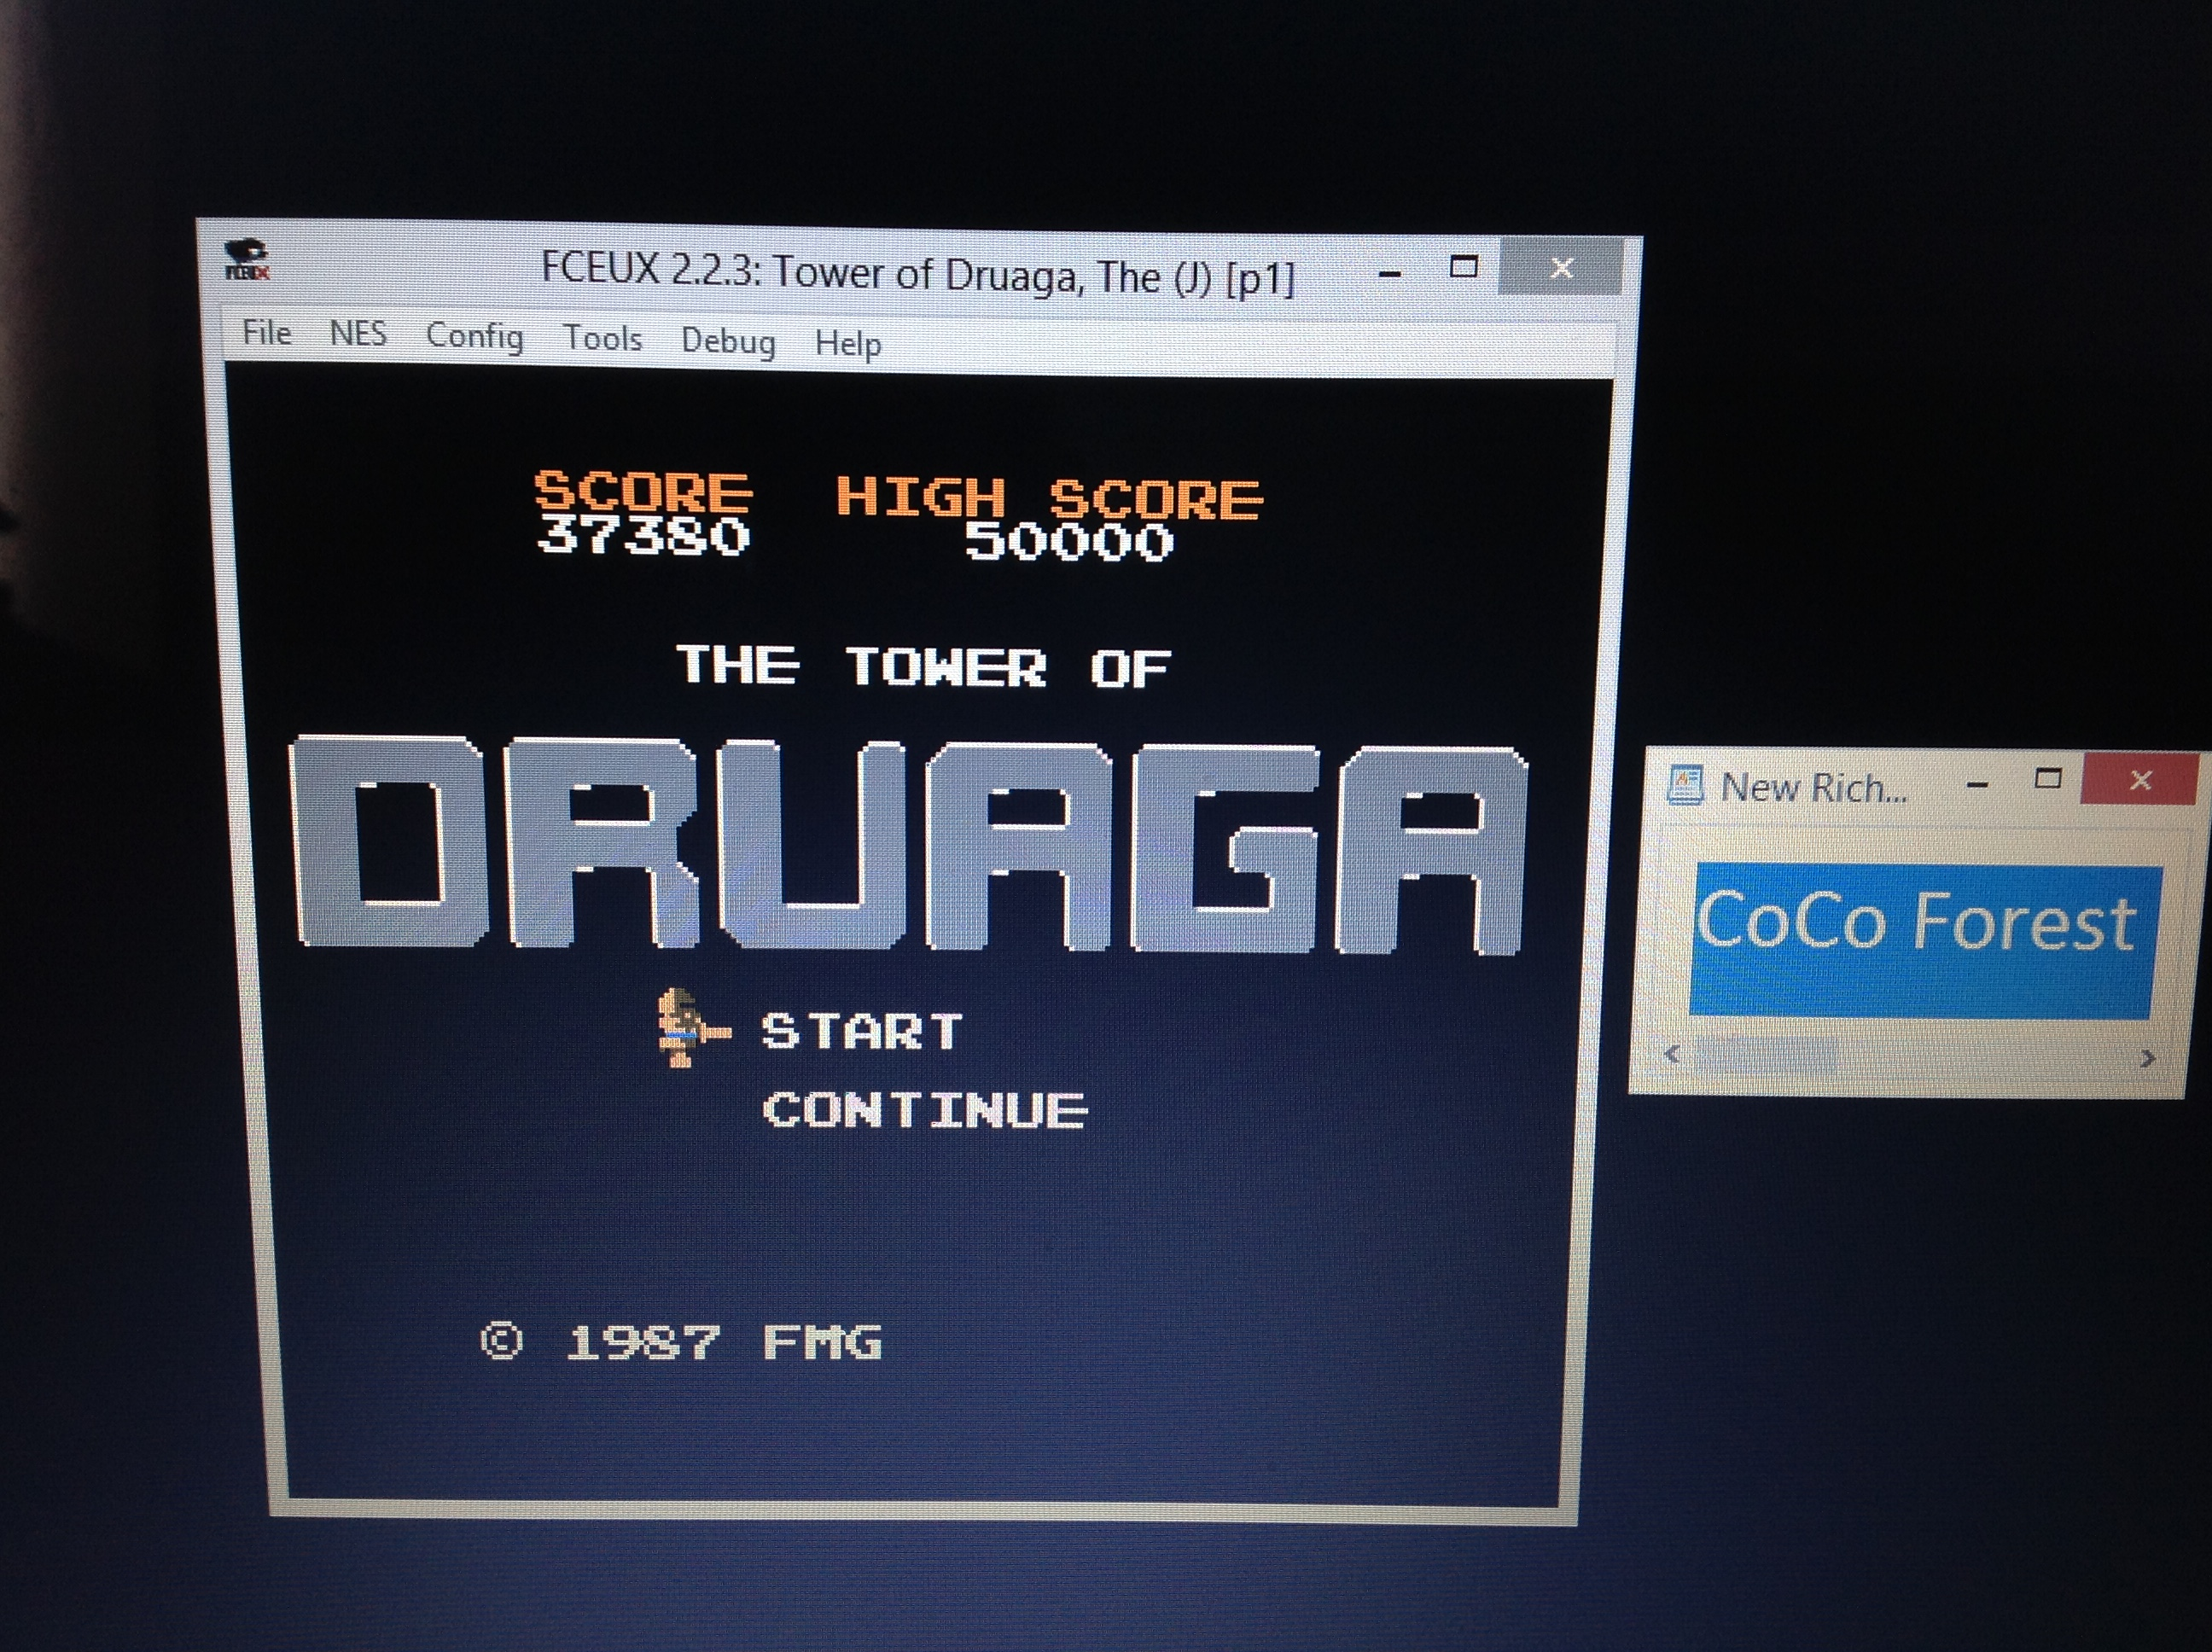 CoCoForest: The Tower of Druaga (NES/Famicom Emulated) 37,380 points on 2018-10-05 09:06:32